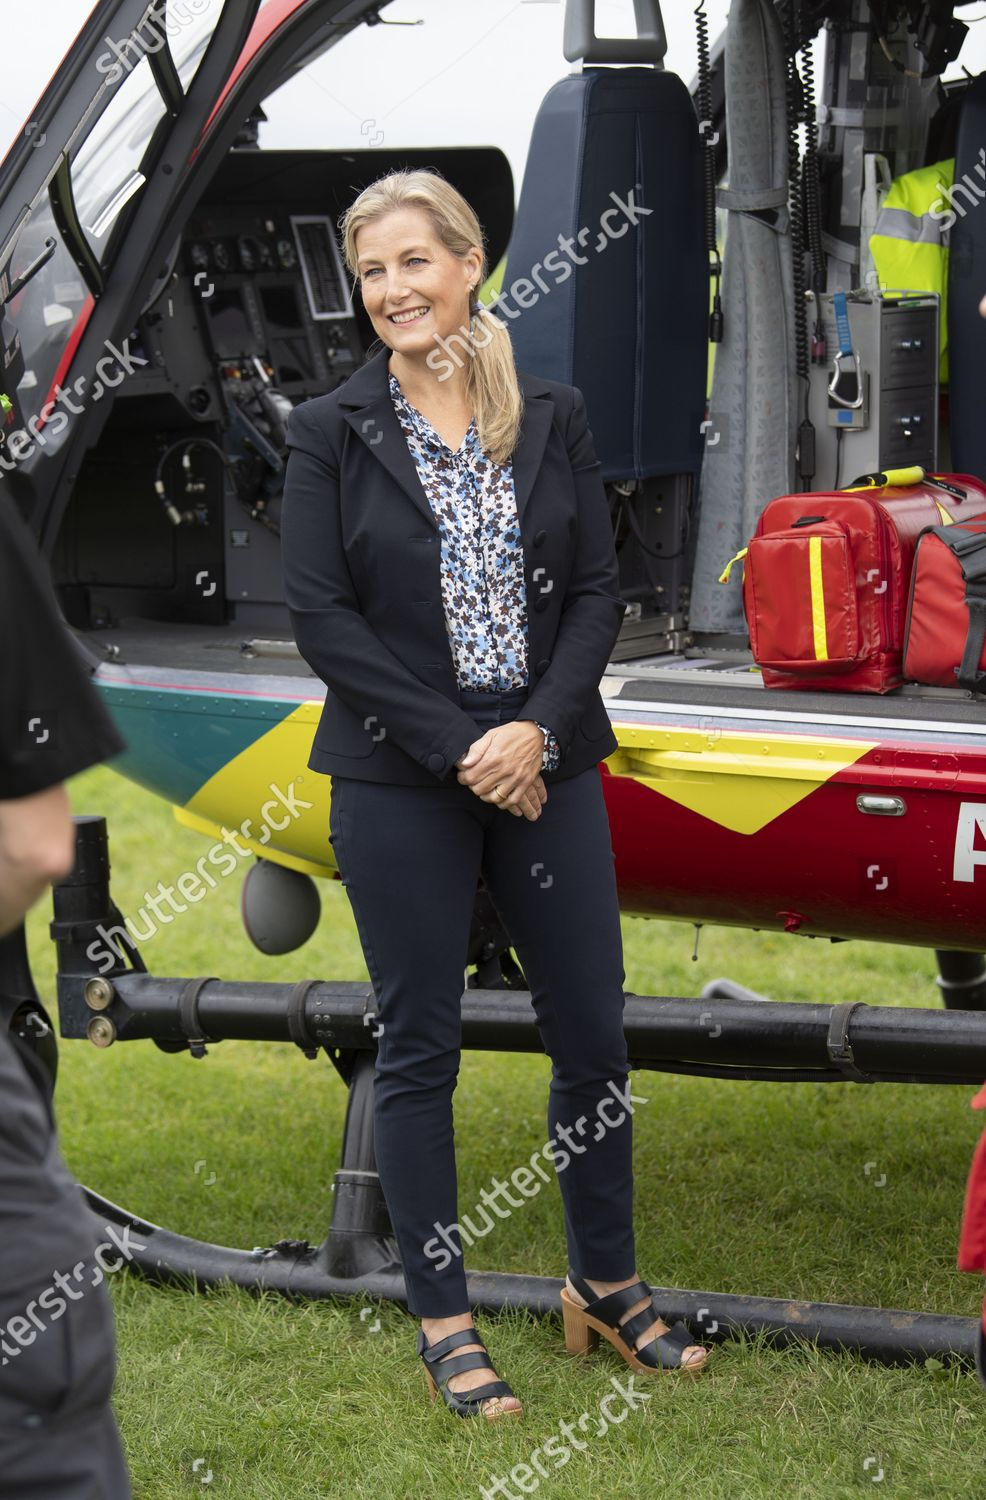 sophie-countess-of-wessex-visit-to-thames-valley-air-ambulance-white-waltham-airfield-maidenhead-uk-shutterstock-editorial-10764568k.jpg